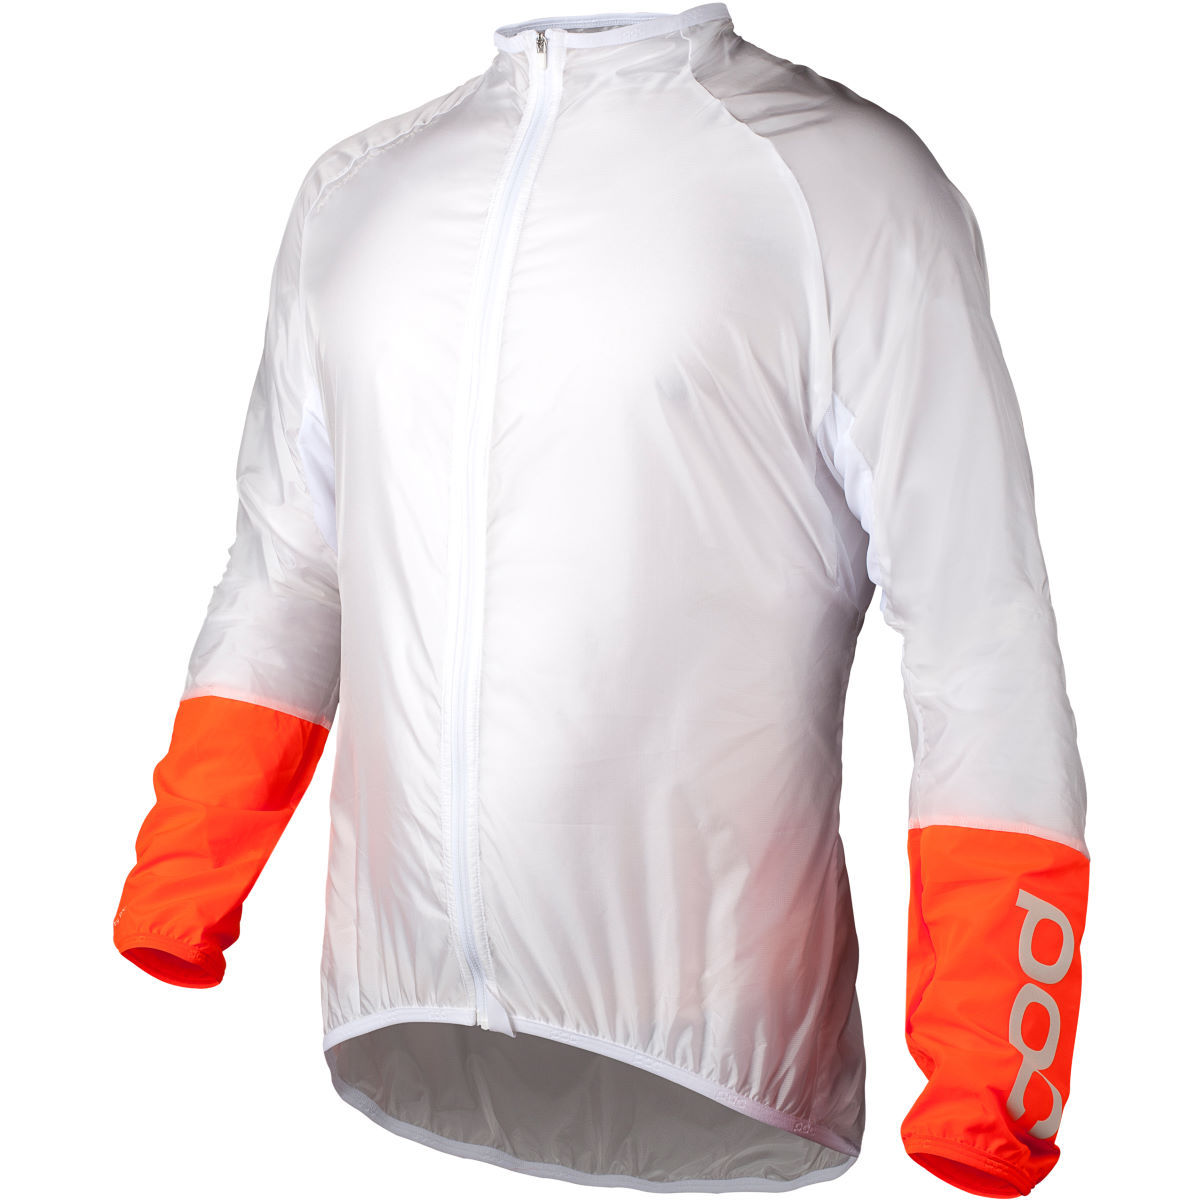 Veste POC Essential AVIP Light Wind - S White/Zink Orange Coupe-vents vélo